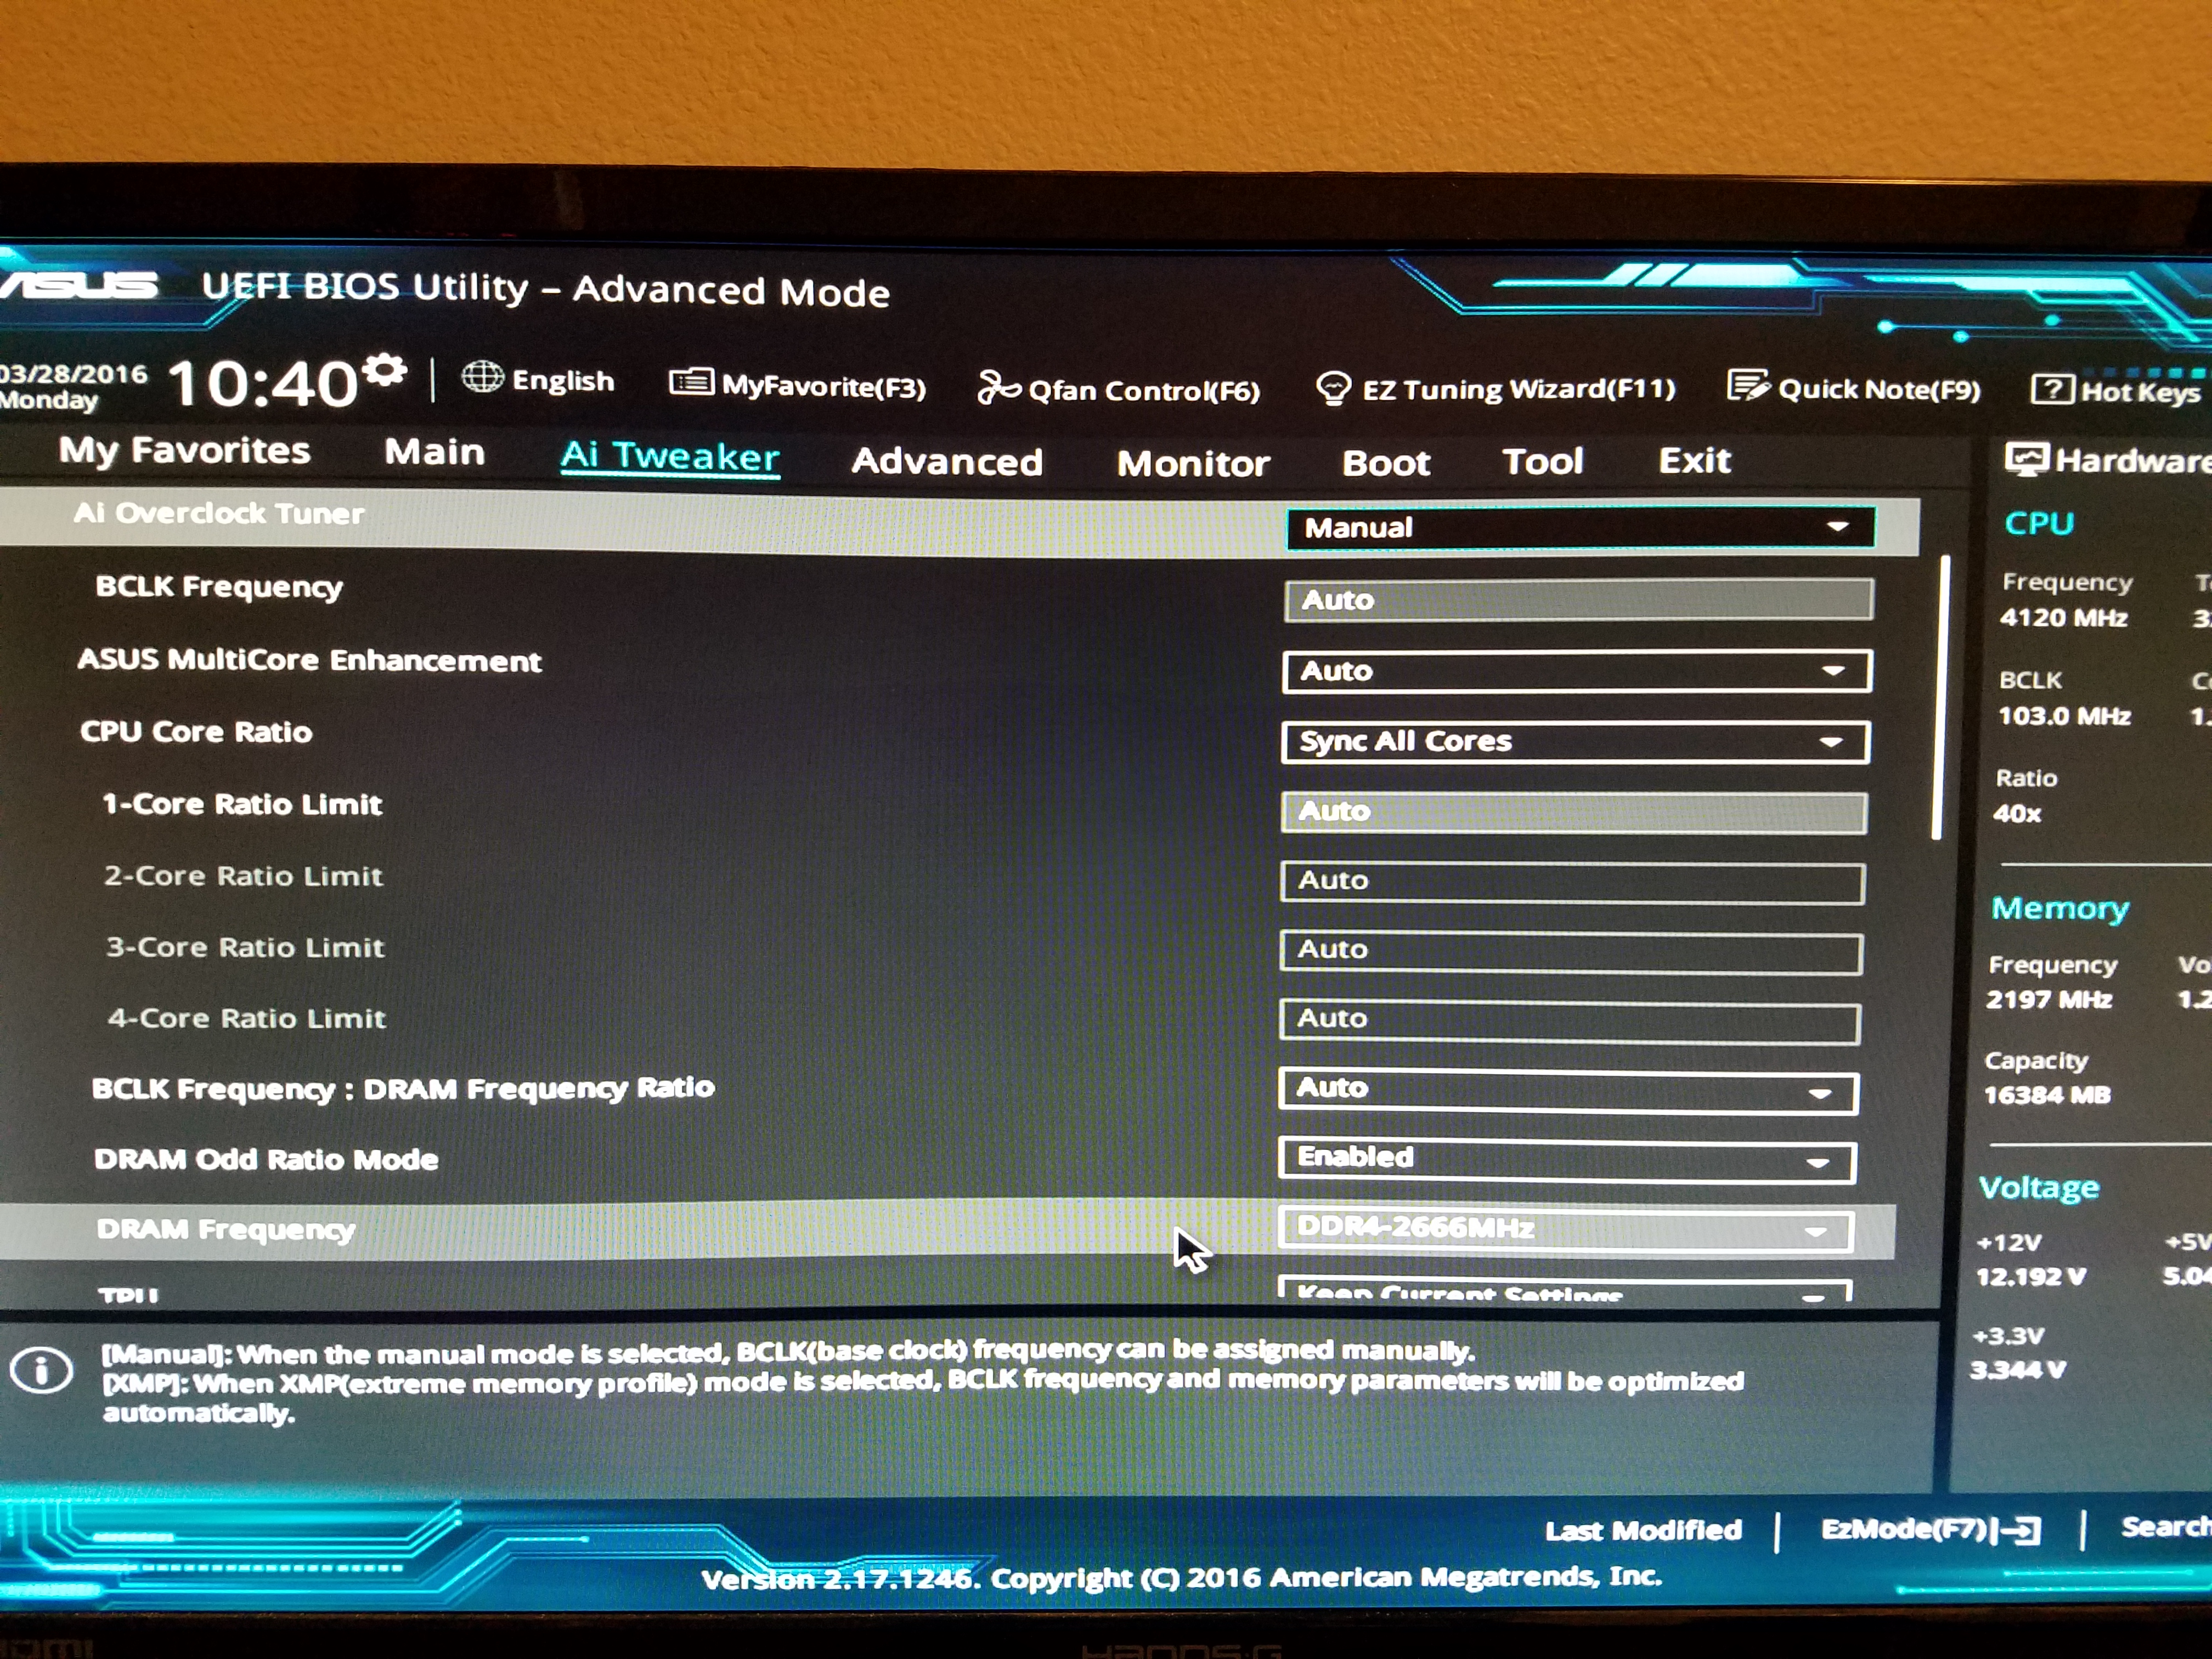 Enabling XMP causes all drives to slow down, causes long